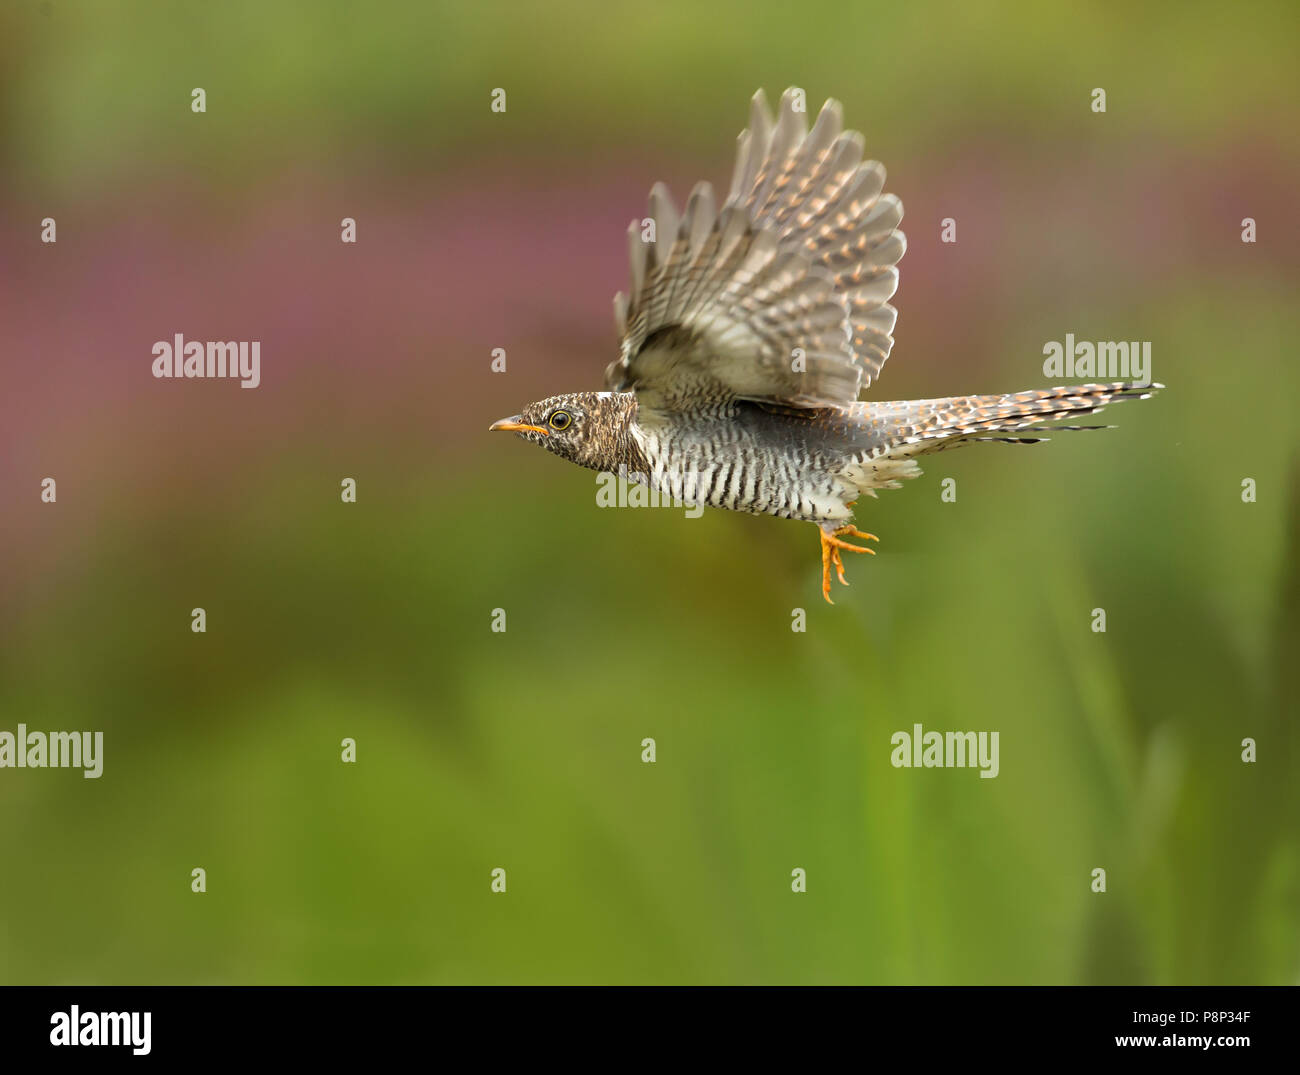 Common Cuckoo flying - Stock Image